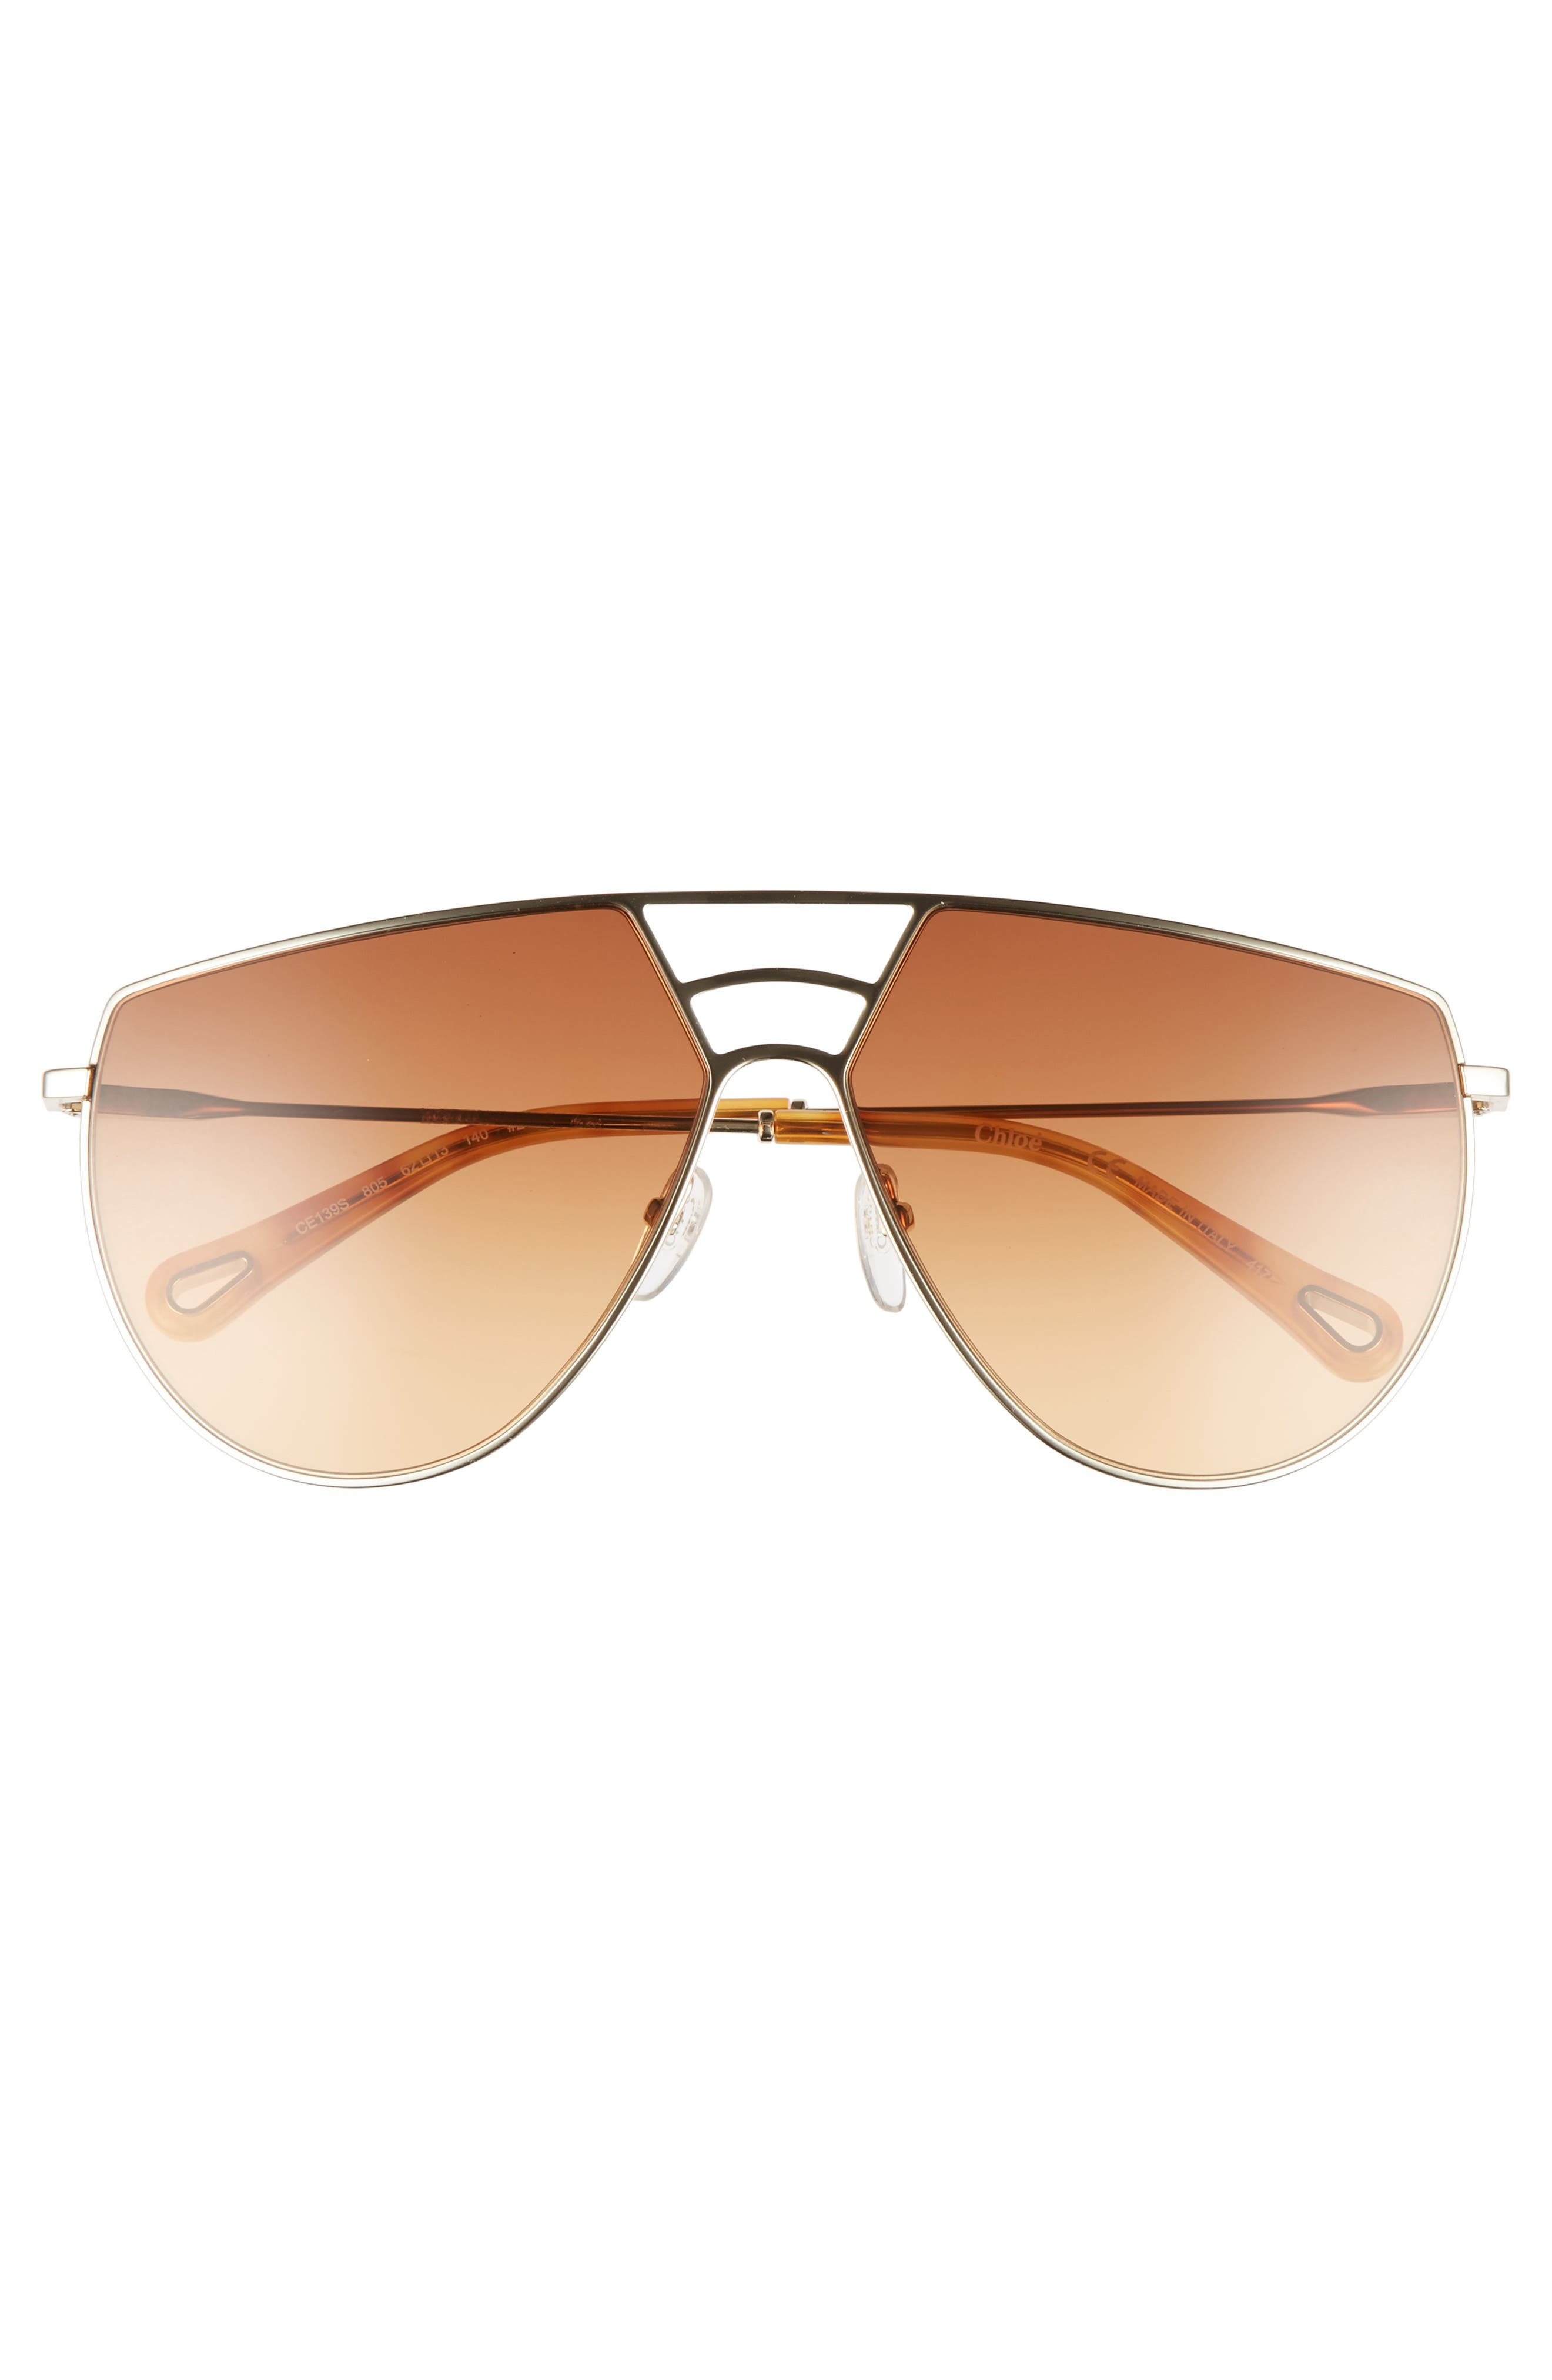 Negative Space 62mm Oversize Aviator Sunglasses,                             Alternate thumbnail 3, color,                             Gold/ Burnt